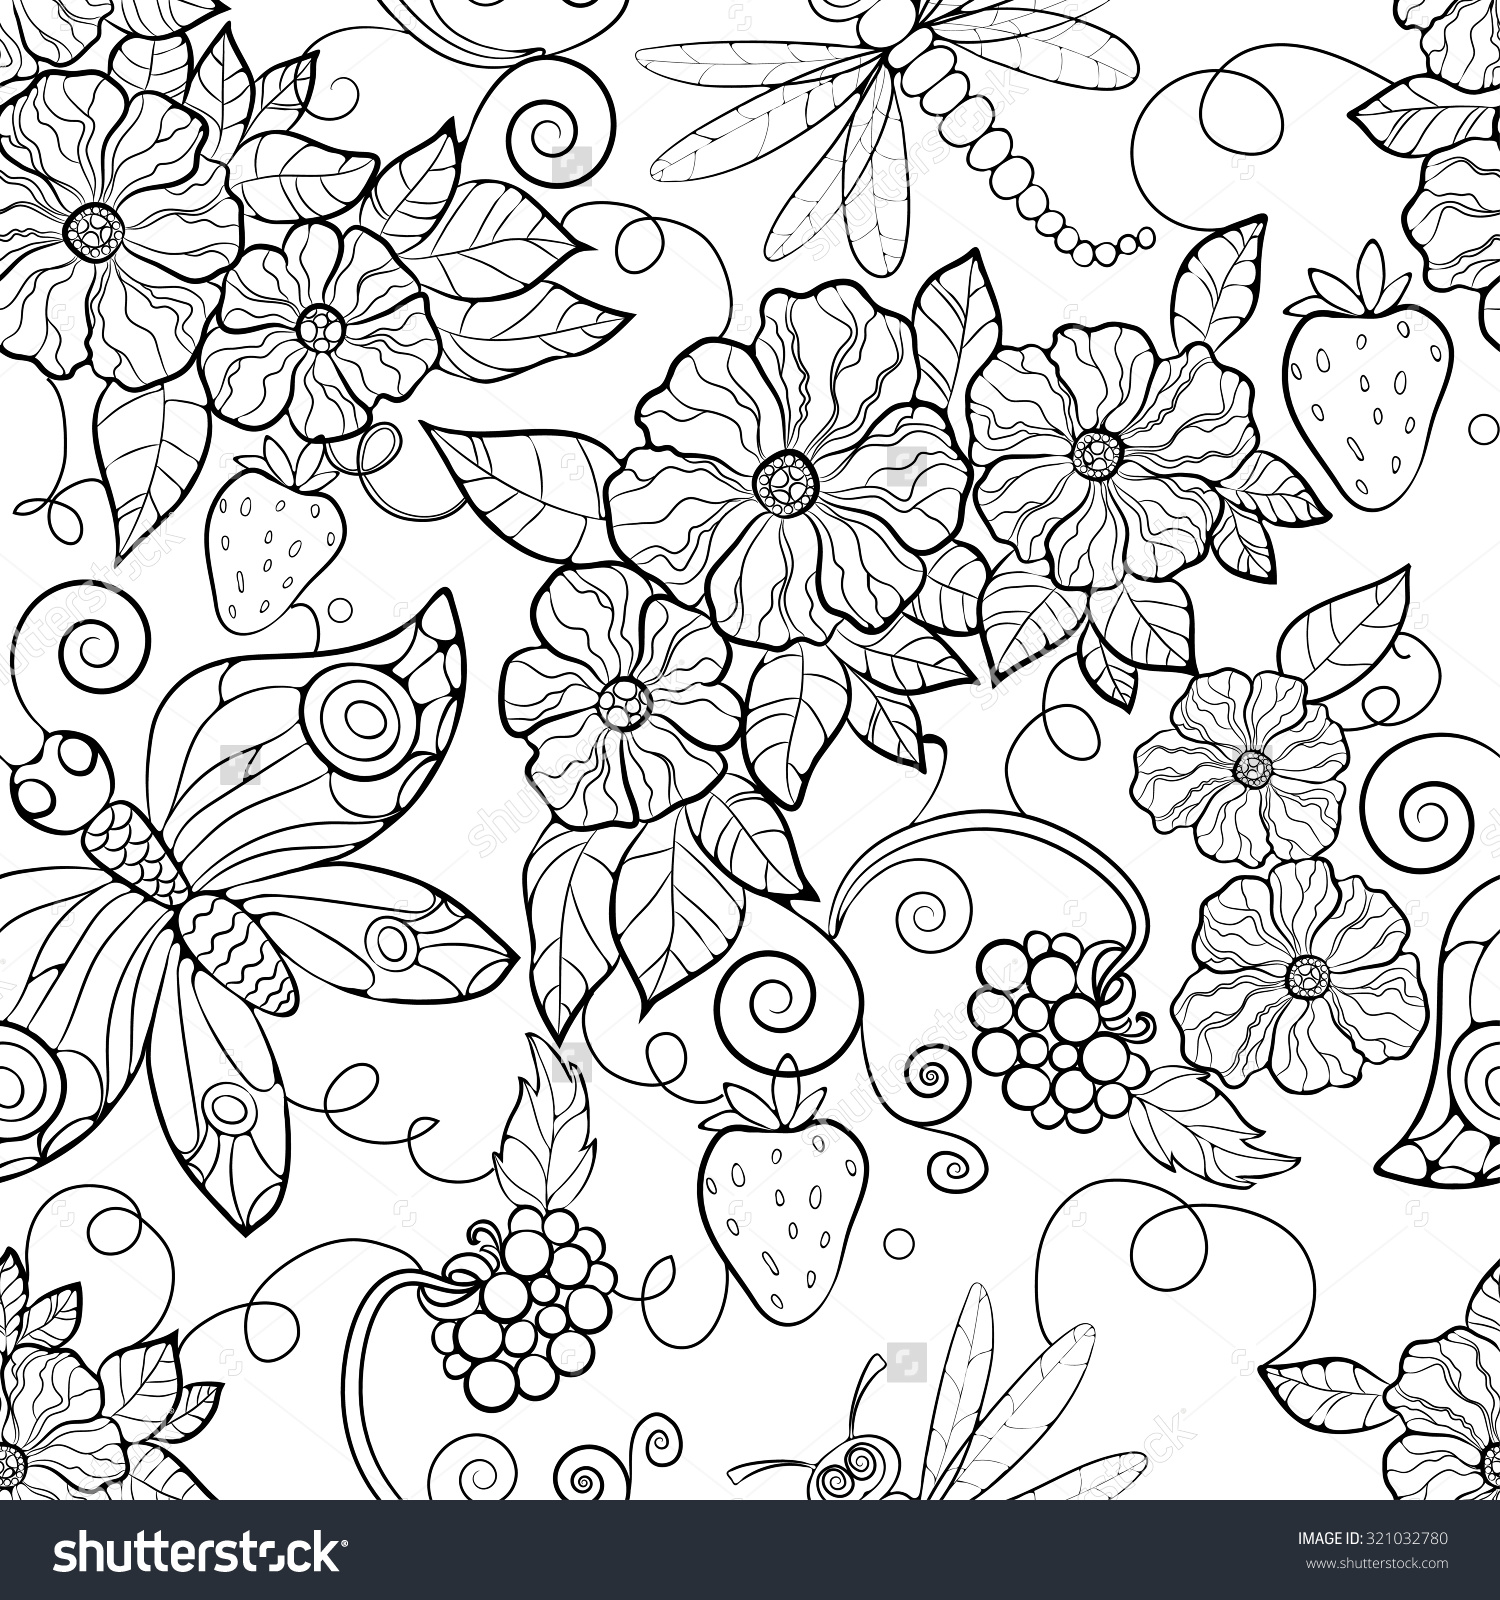 Flower Coloring Pages For Adults At Getdrawings Com Free For